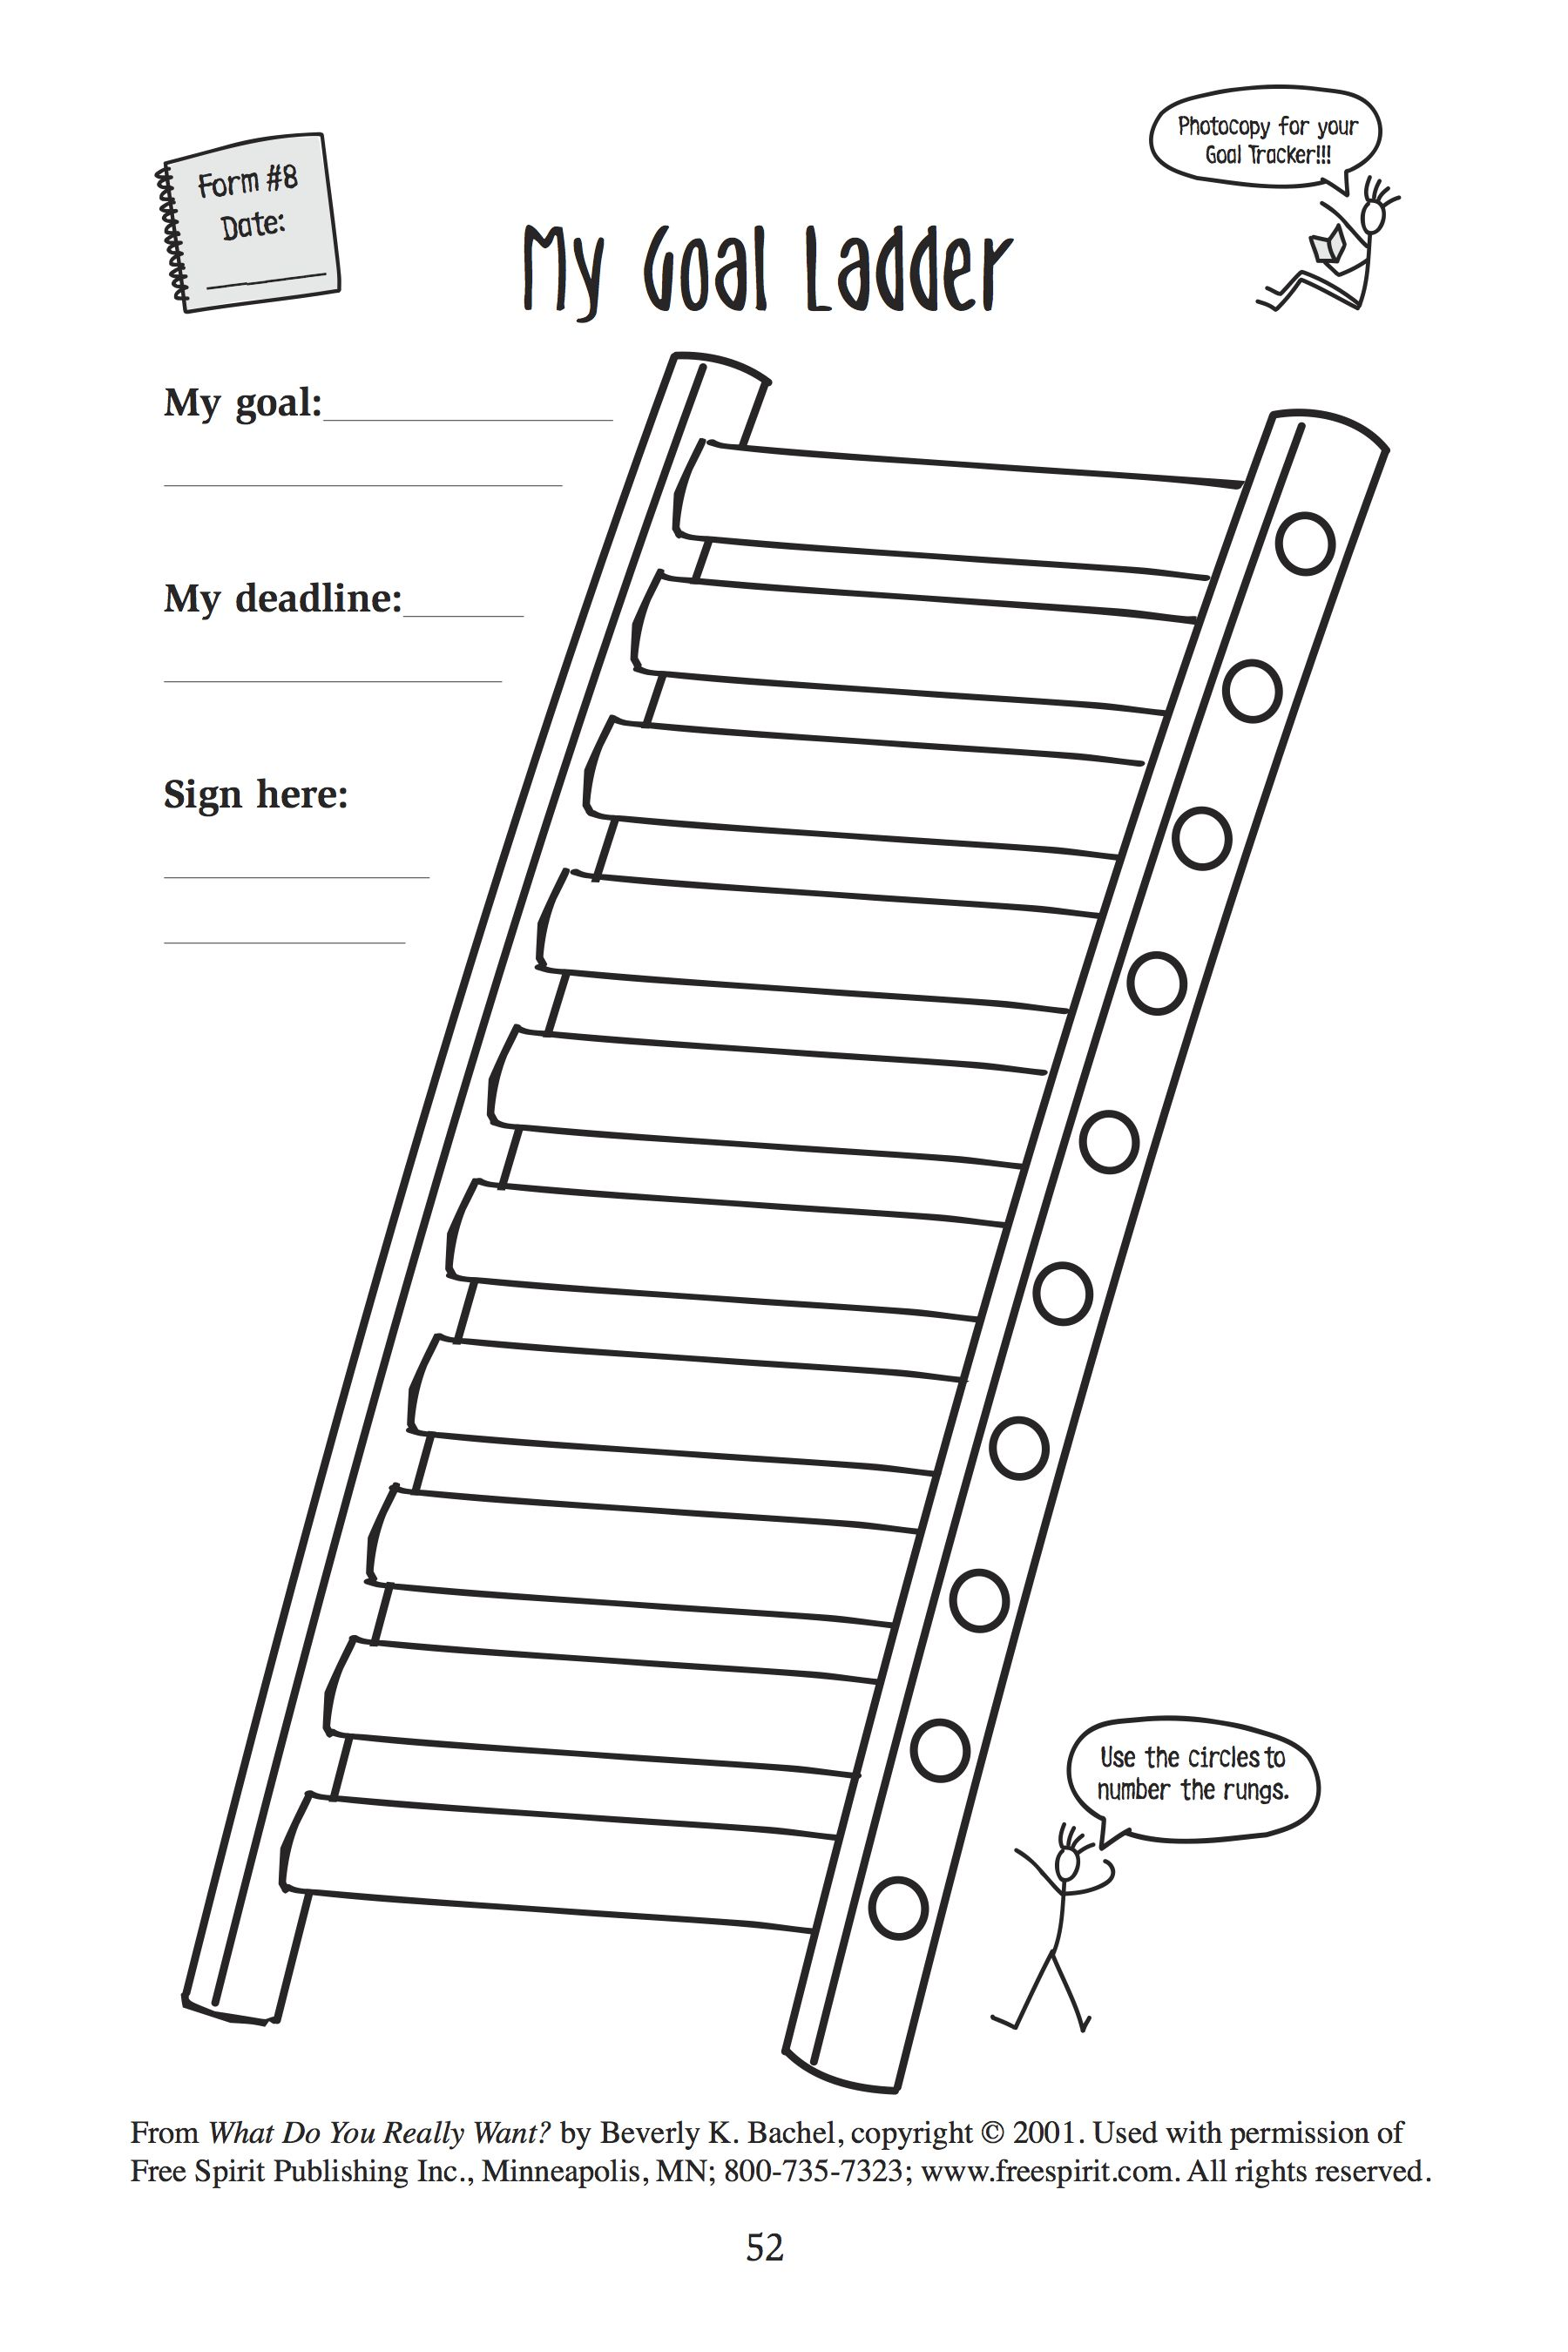 Free Printable Handout For Teachers Counselors And Parents My Goal Ladder From What Do You